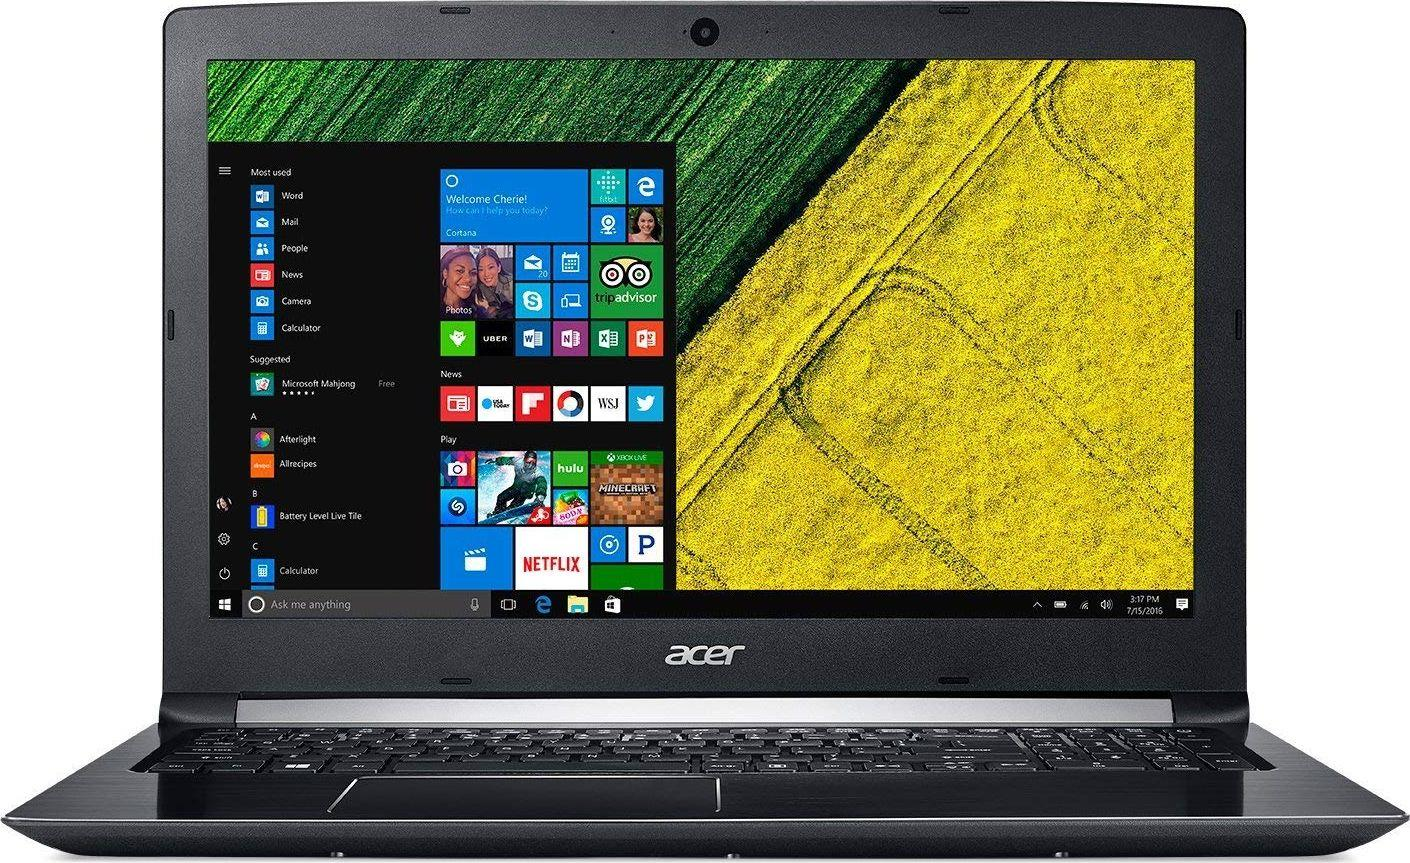 Notebook Acer Aspire 5 15.6 cal FHD Matt i5-8250U 8GB SSD256GB MX130-2GB W10 Black